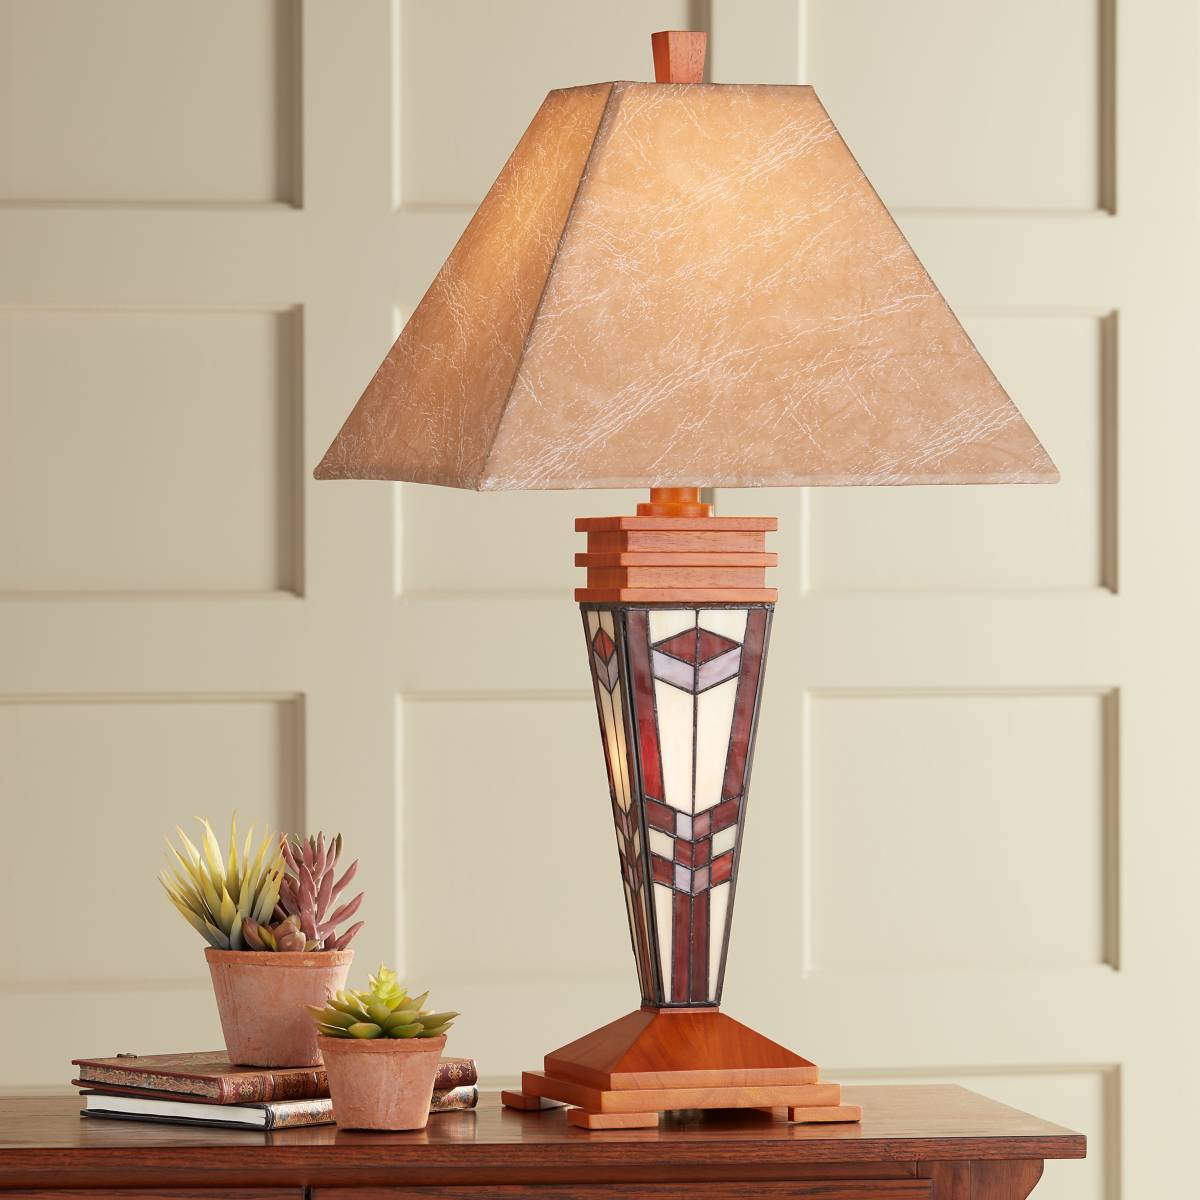 Lamp S: Wood, Rustic - Lodge, Table Lamps